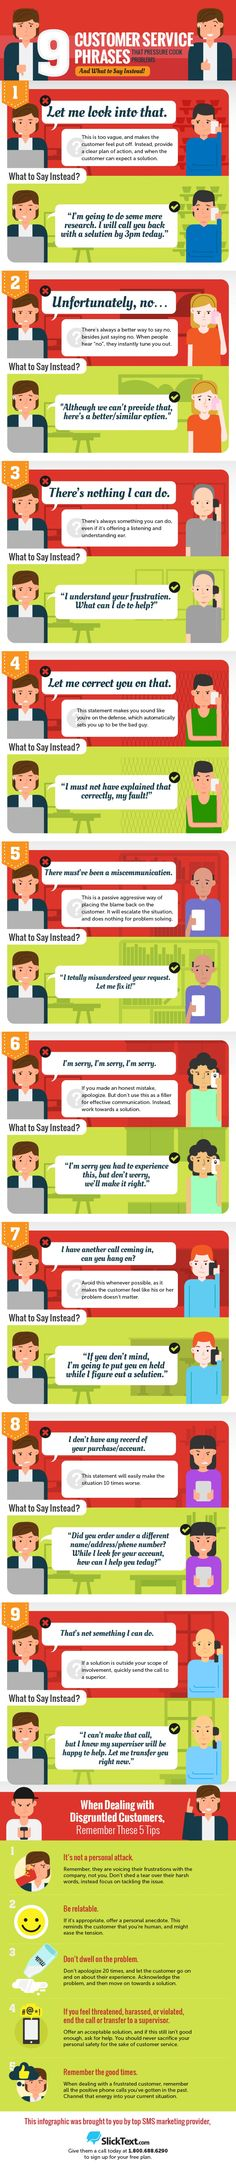 9 Customer Service Phrases that Pressure Cook Problems and What to Say Instead #Infographic #infografía